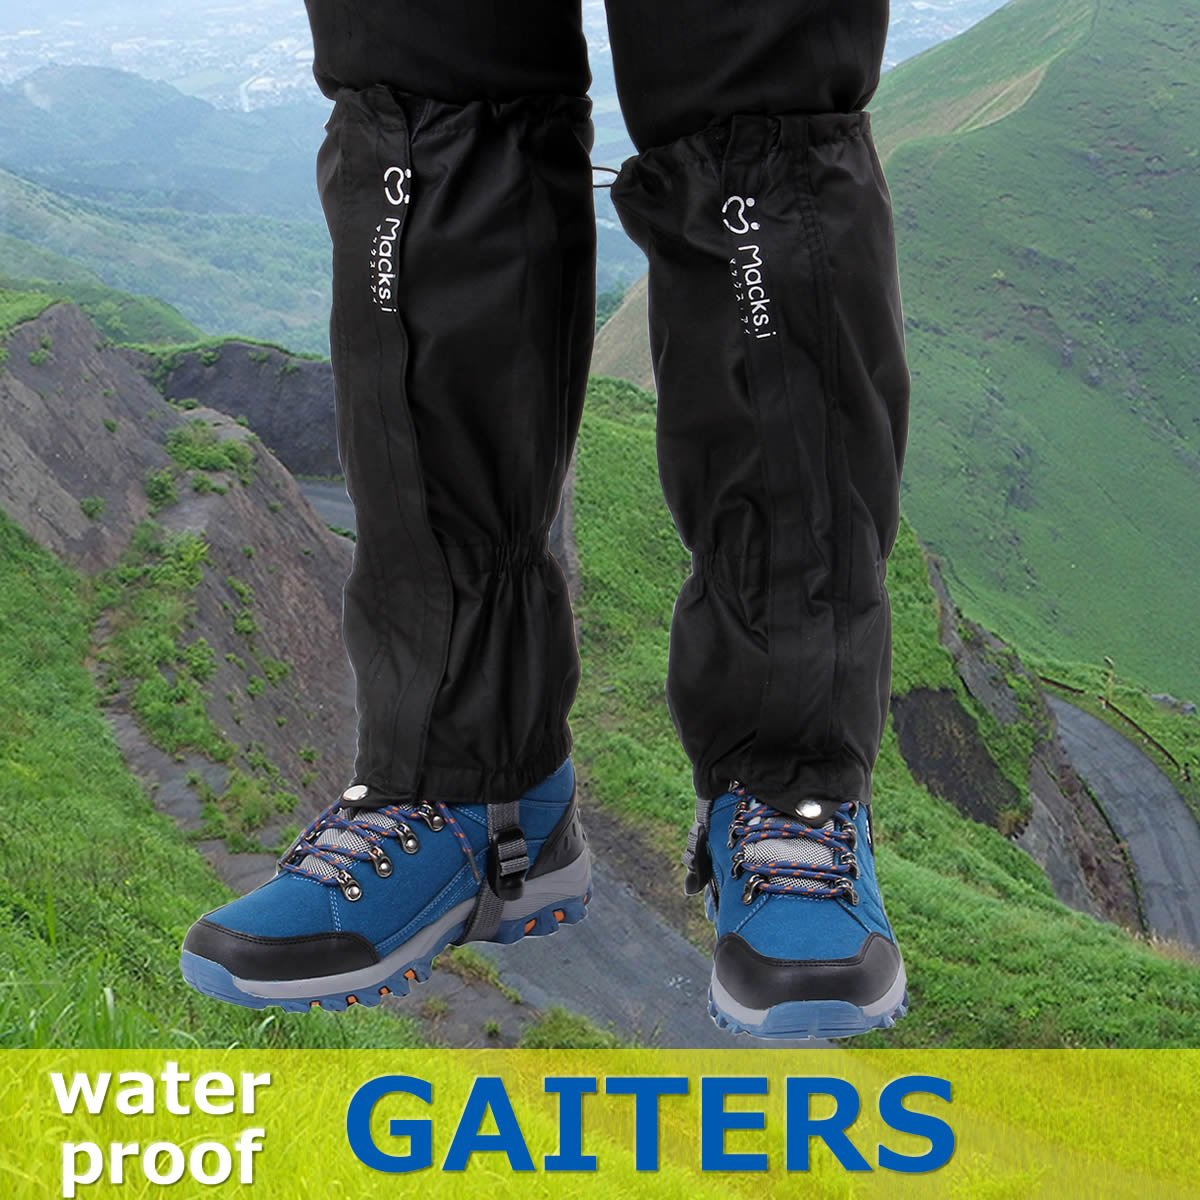 Macks.i Outdoor Unisex Waterproof Camping Hiking Gaiters High Leg Cover 1pair with a Free Shoe Bag by Macks.i (Image #2)